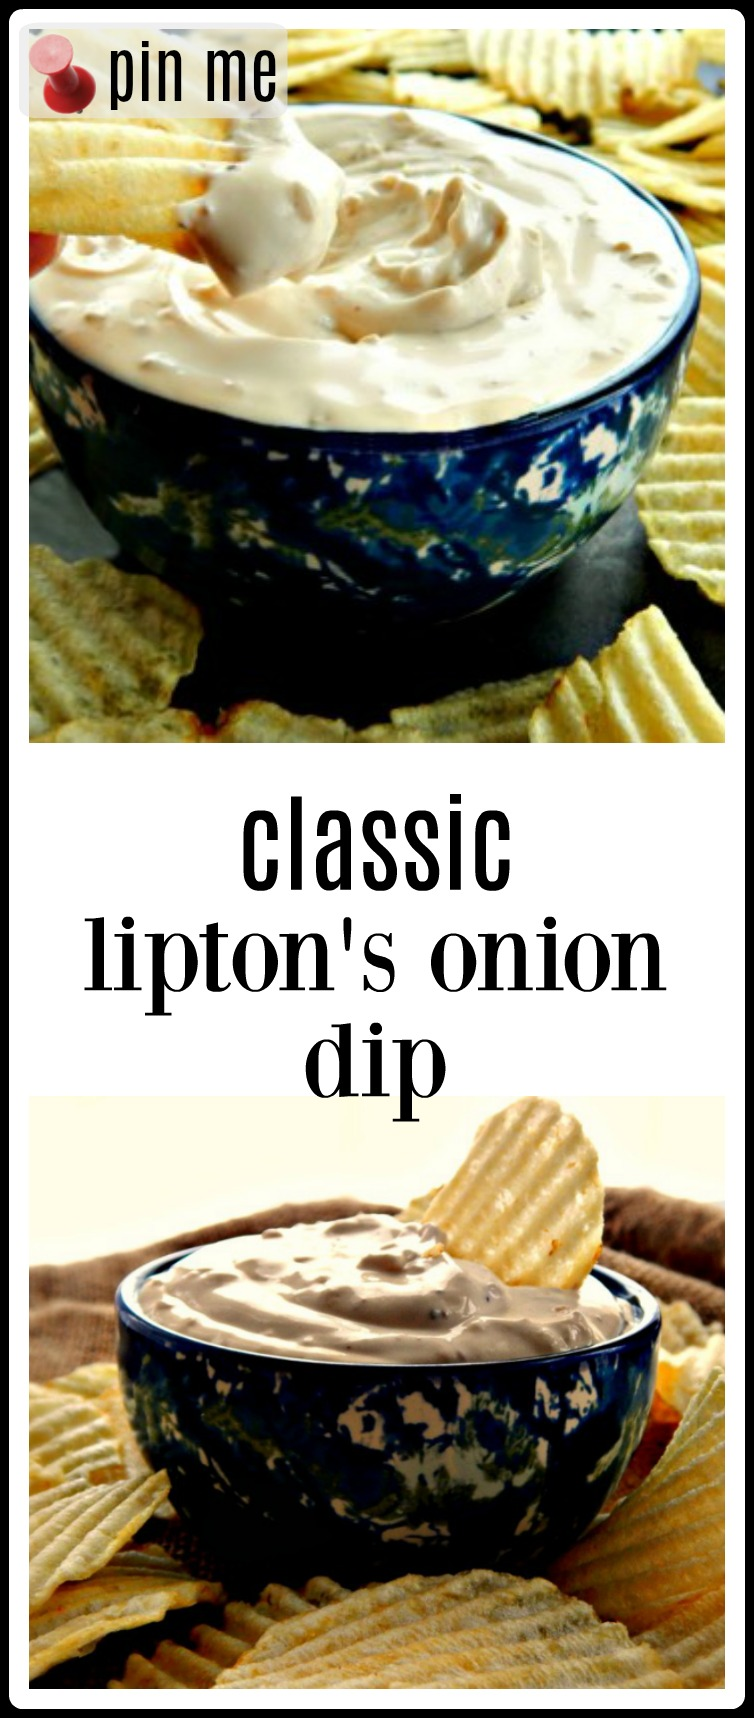 Classic Lipton's Onion Soup Dip made from Lipton's Onion Soup Mix and Sour Cream is everything I remember! So much fresher than anything you can buy in a carton and so easy! #LiptonsOnionDip #ClassicLiptonsOnionDip #OnionSoupDip #OnionDip